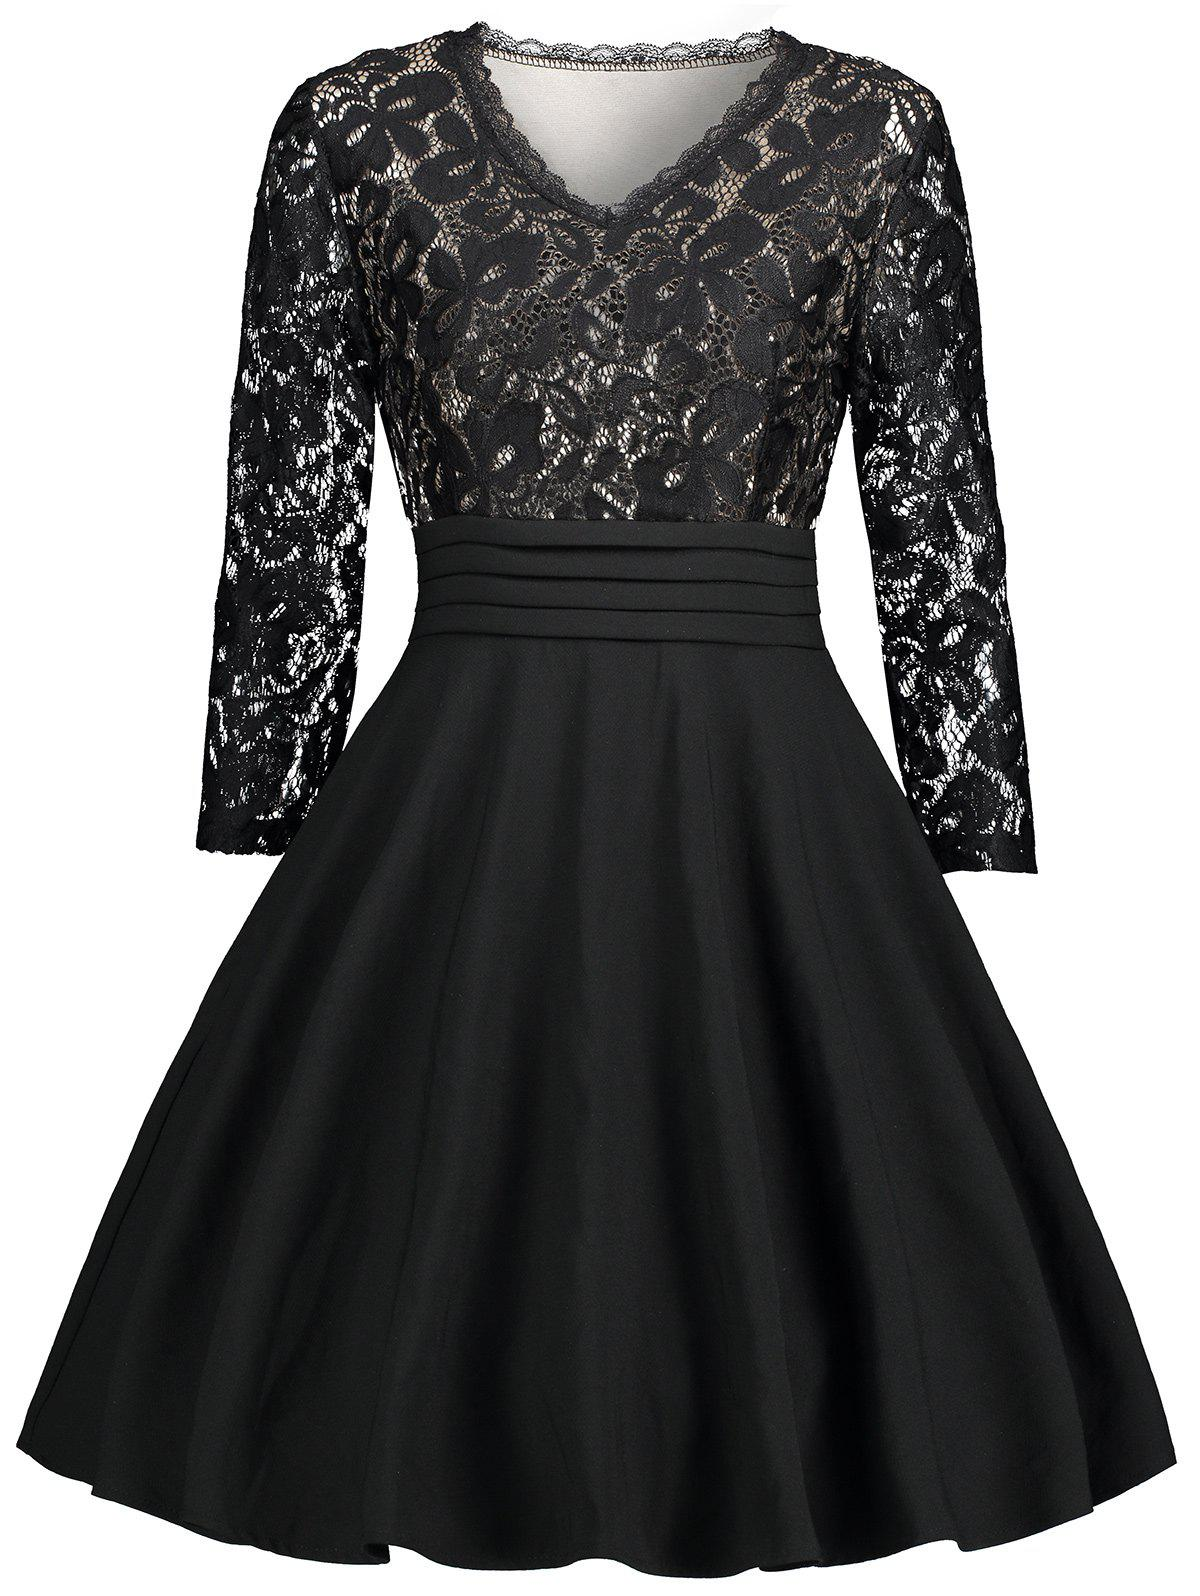 V Neck Lace Panel Fit and Flare Dress retro lace panel fit and flare dress